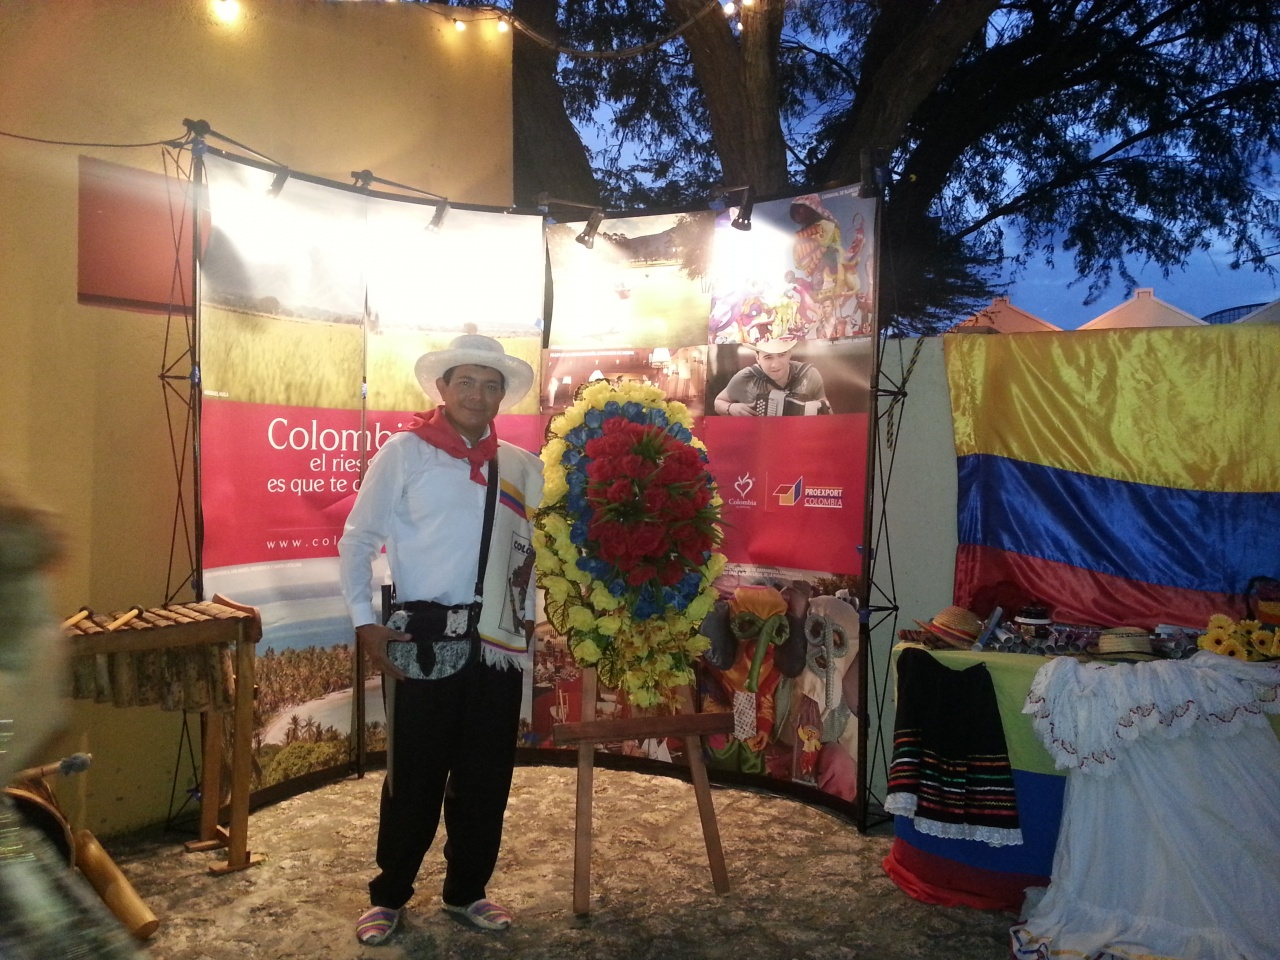 ... bet365 freebet code mobil bet365 And Breakfast (Bogota, Cundinamarca) Hoteles - Experiencia Colombia